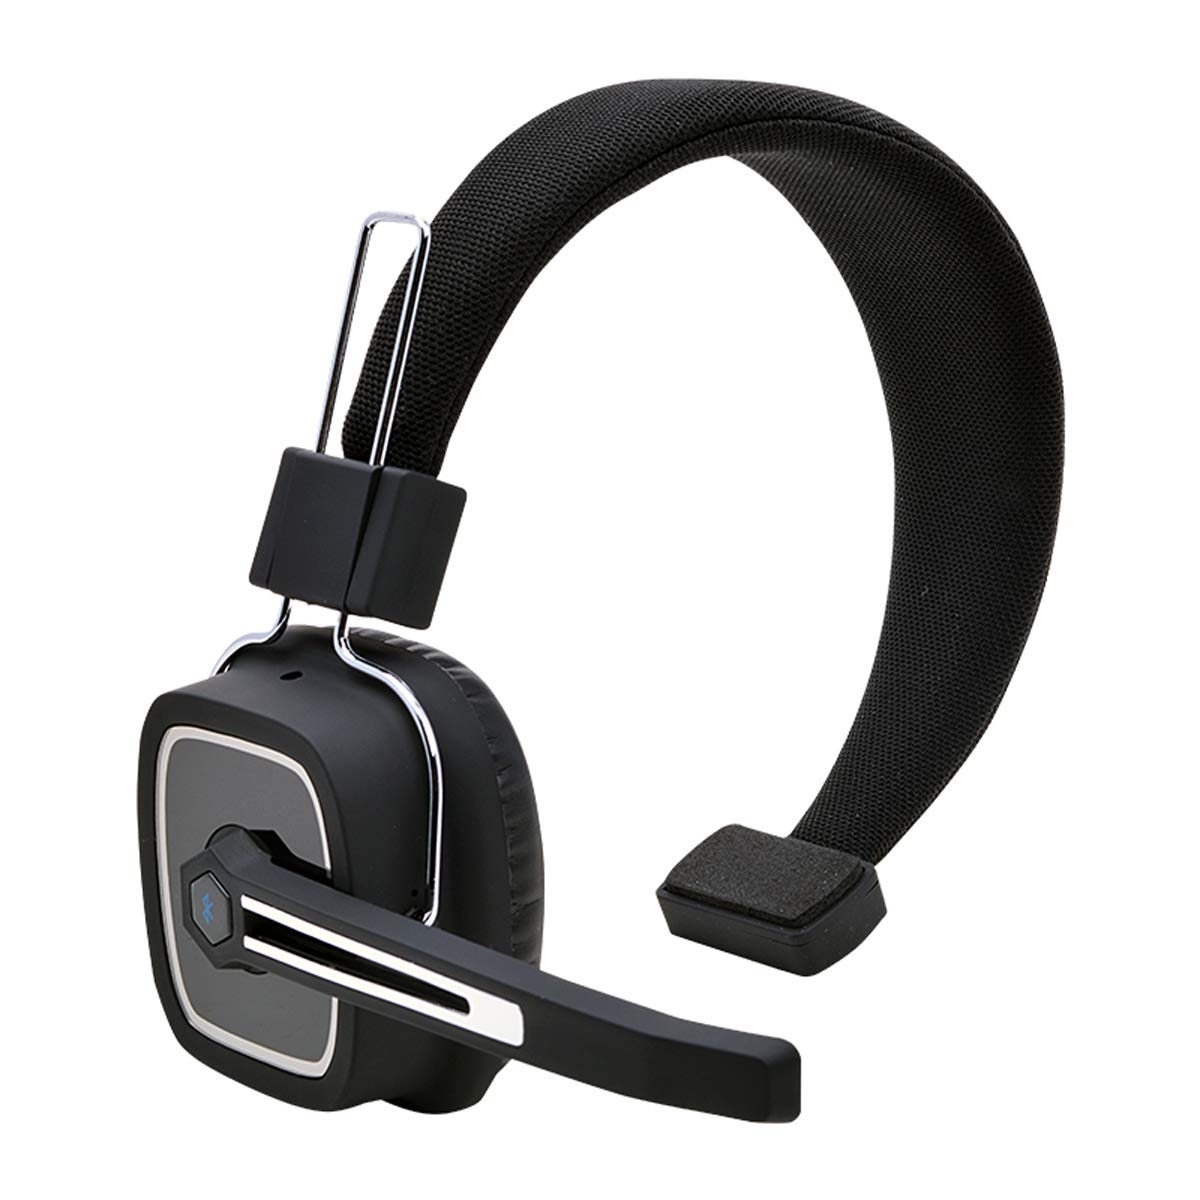 Truck Driver Bluetooth Headset/Office Headset, Wireless Over The Head Headset with Extra Boom Noise Reduction Mic for Phones,Call Center, Skype, VoIP by Electronic Home